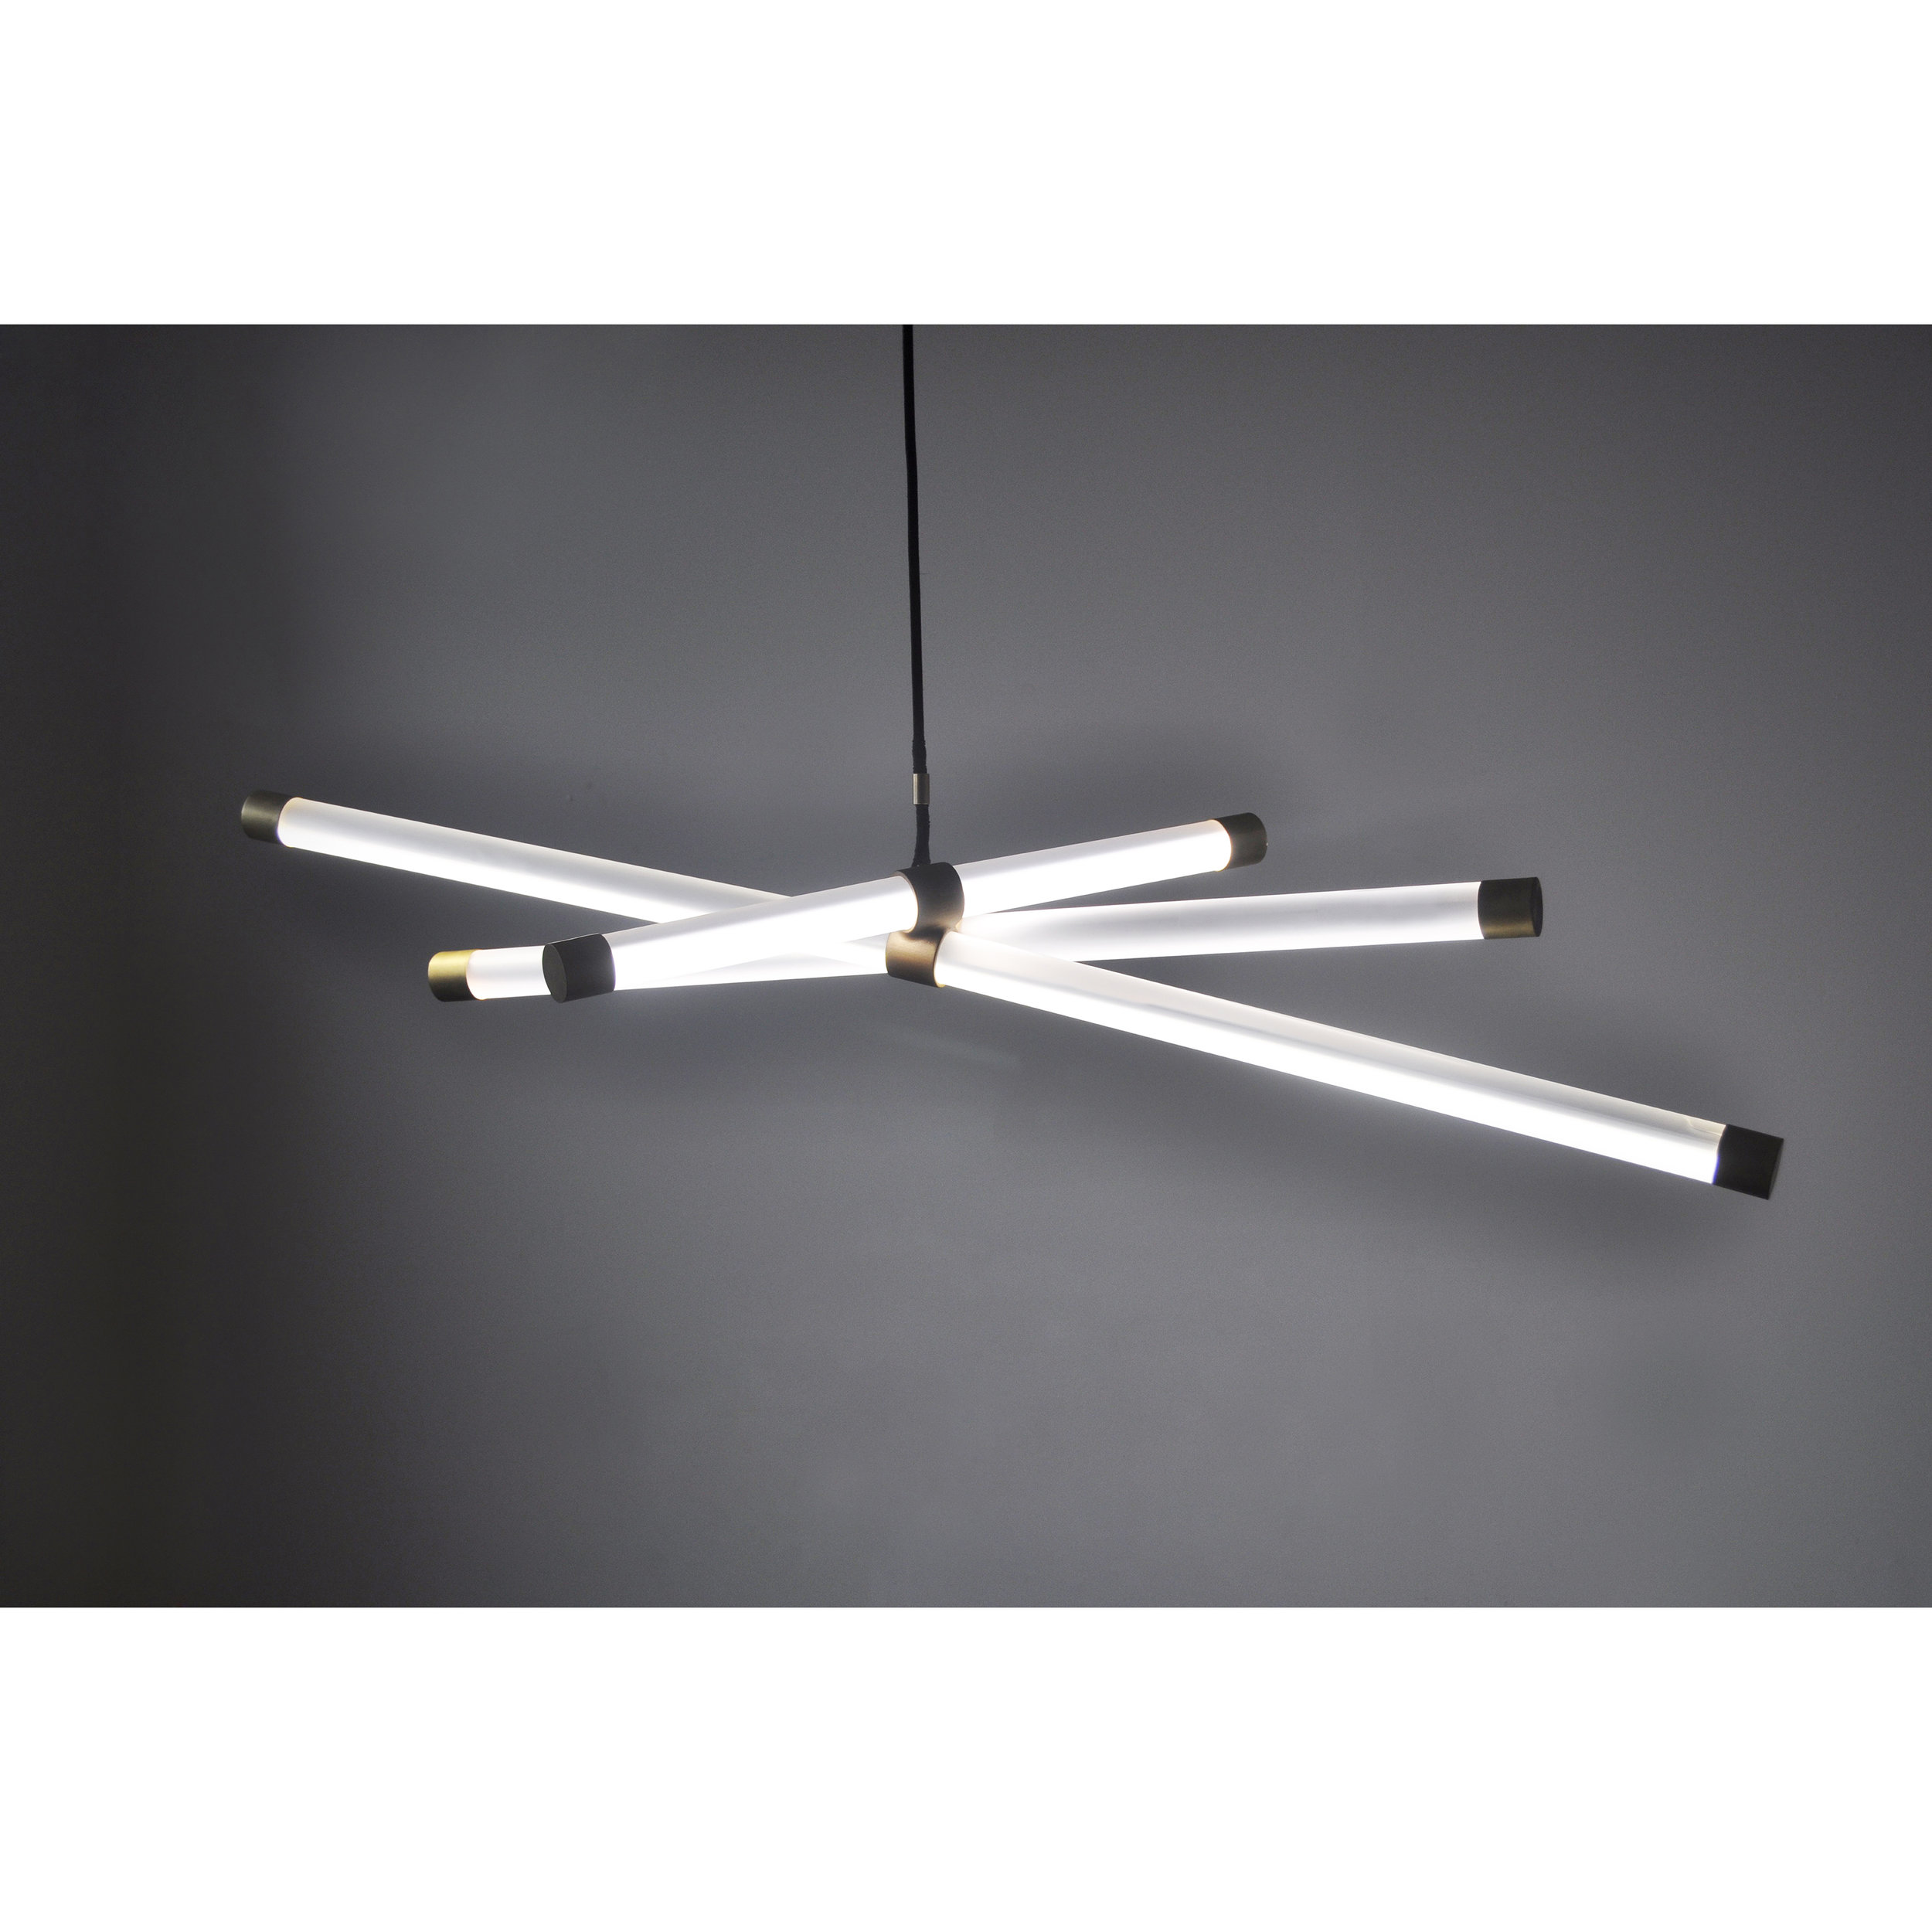 HANGING AXIS LIGHT